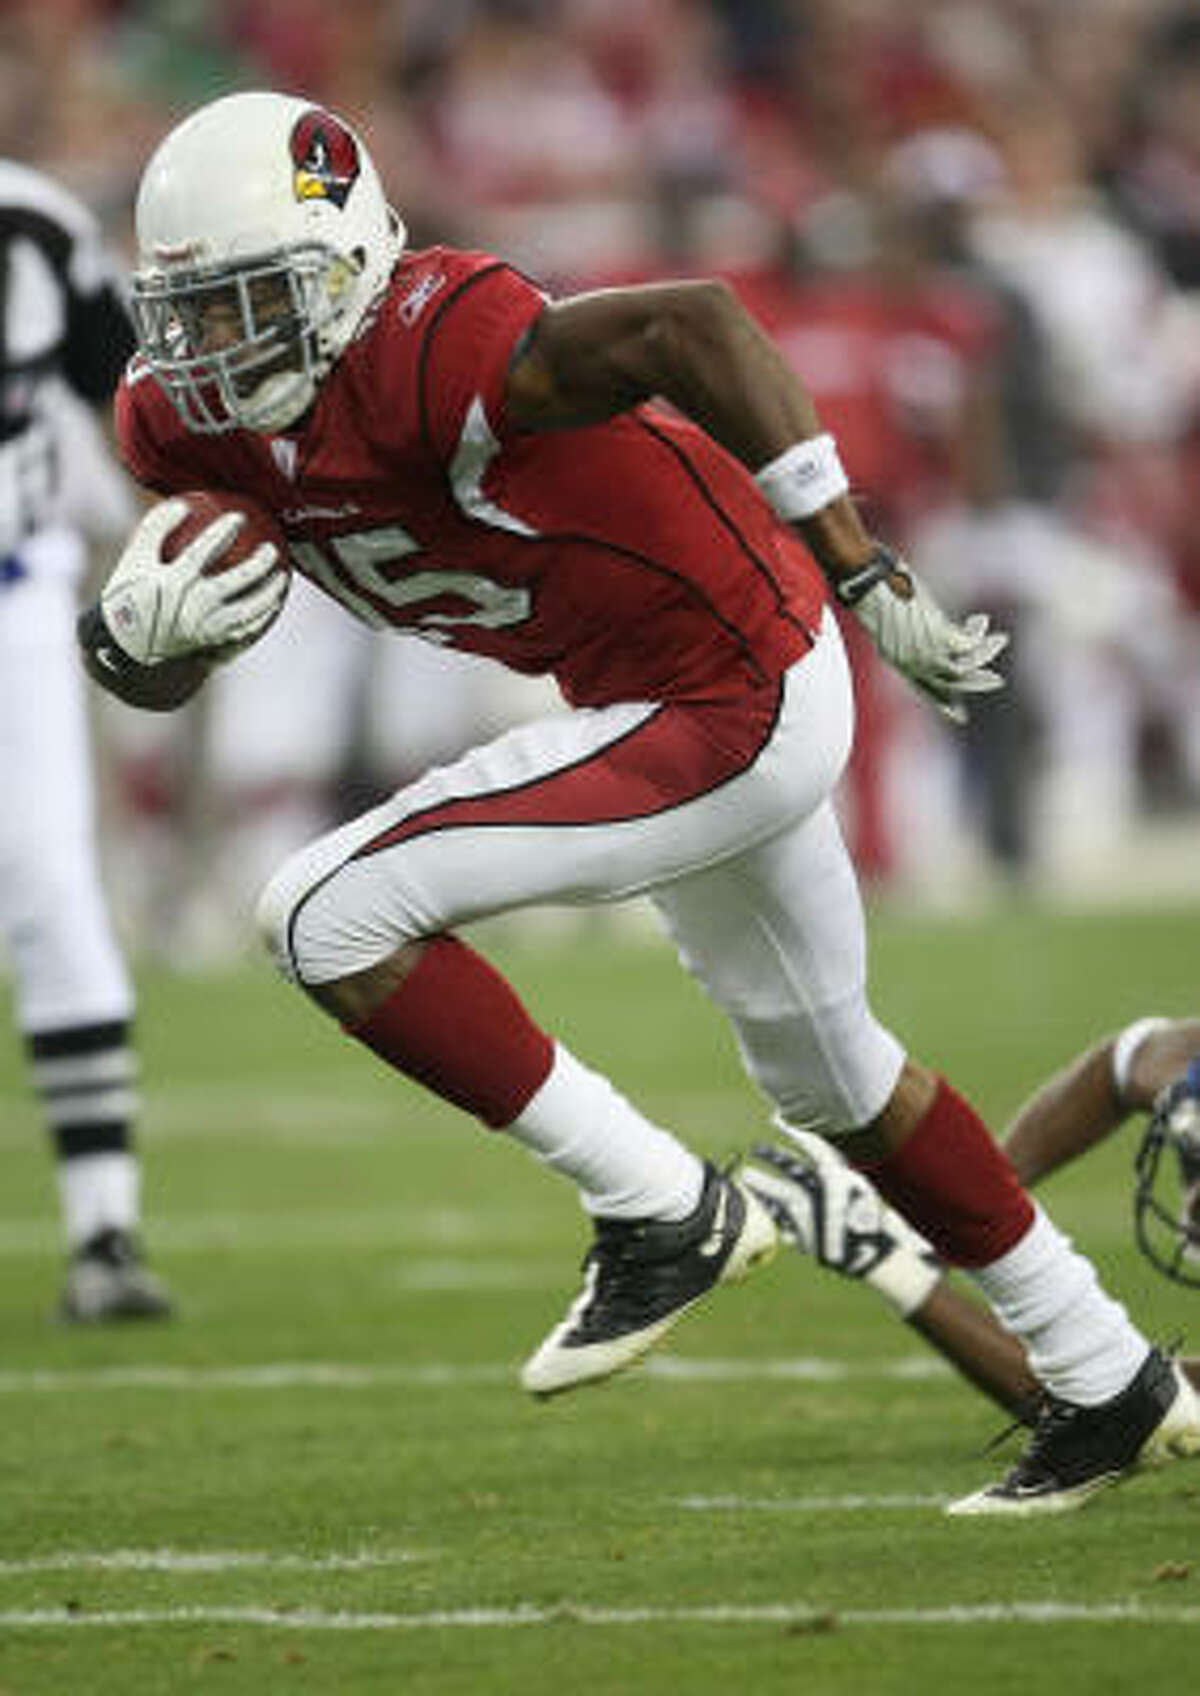 Arizona Cardinals Steve Breaston 84 catches, 1083 yards, 3 touchdowns